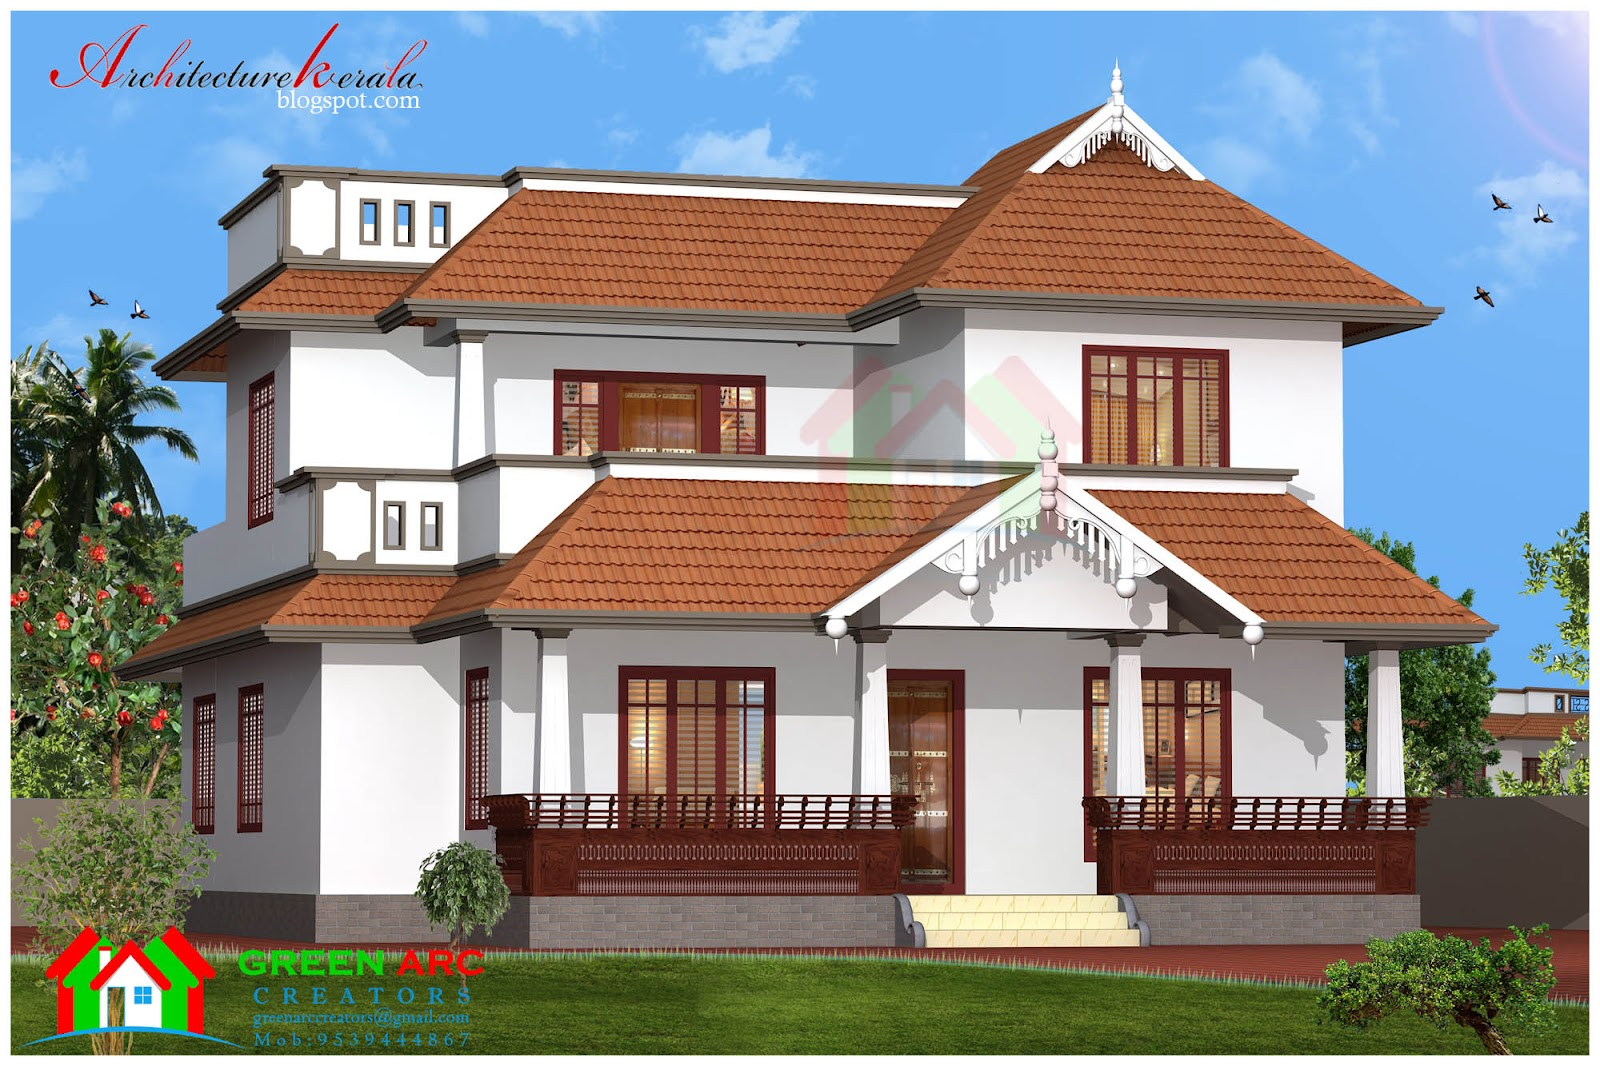 Architecture kerala traditional style kerala house plan for Kerala traditional home plans